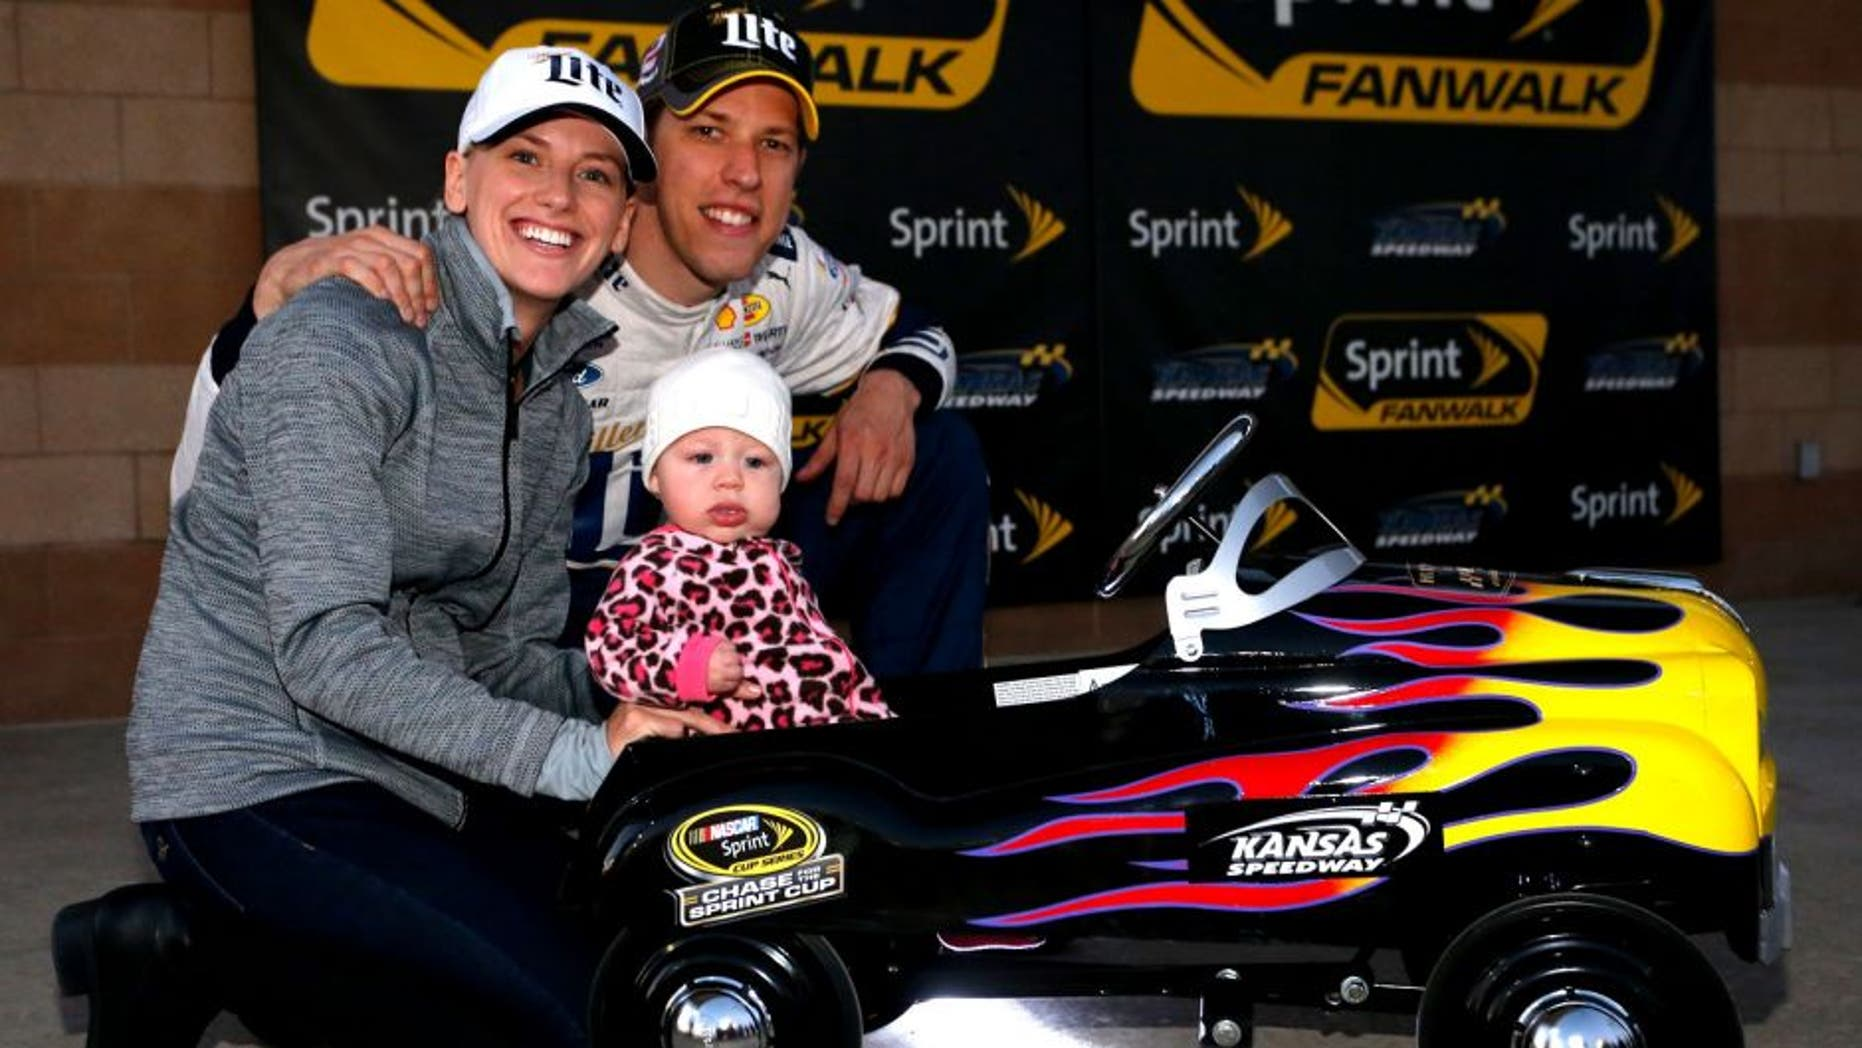 KANSAS CITY, KS - OCTOBER 16: Brad Keselowski, driver of the #2 Miller Lite Ford, poses with his girlfriend Paige White and their daughter Scarlett after Keselowski qualified on the pole for the NASCAR Sprint Cup Series Hollywood Casino 400 at Kansas Speedway on October 16, 2015 in Kansas City, Kansas. (Photo by Brian Lawdermilk/NASCAR via Getty Images)